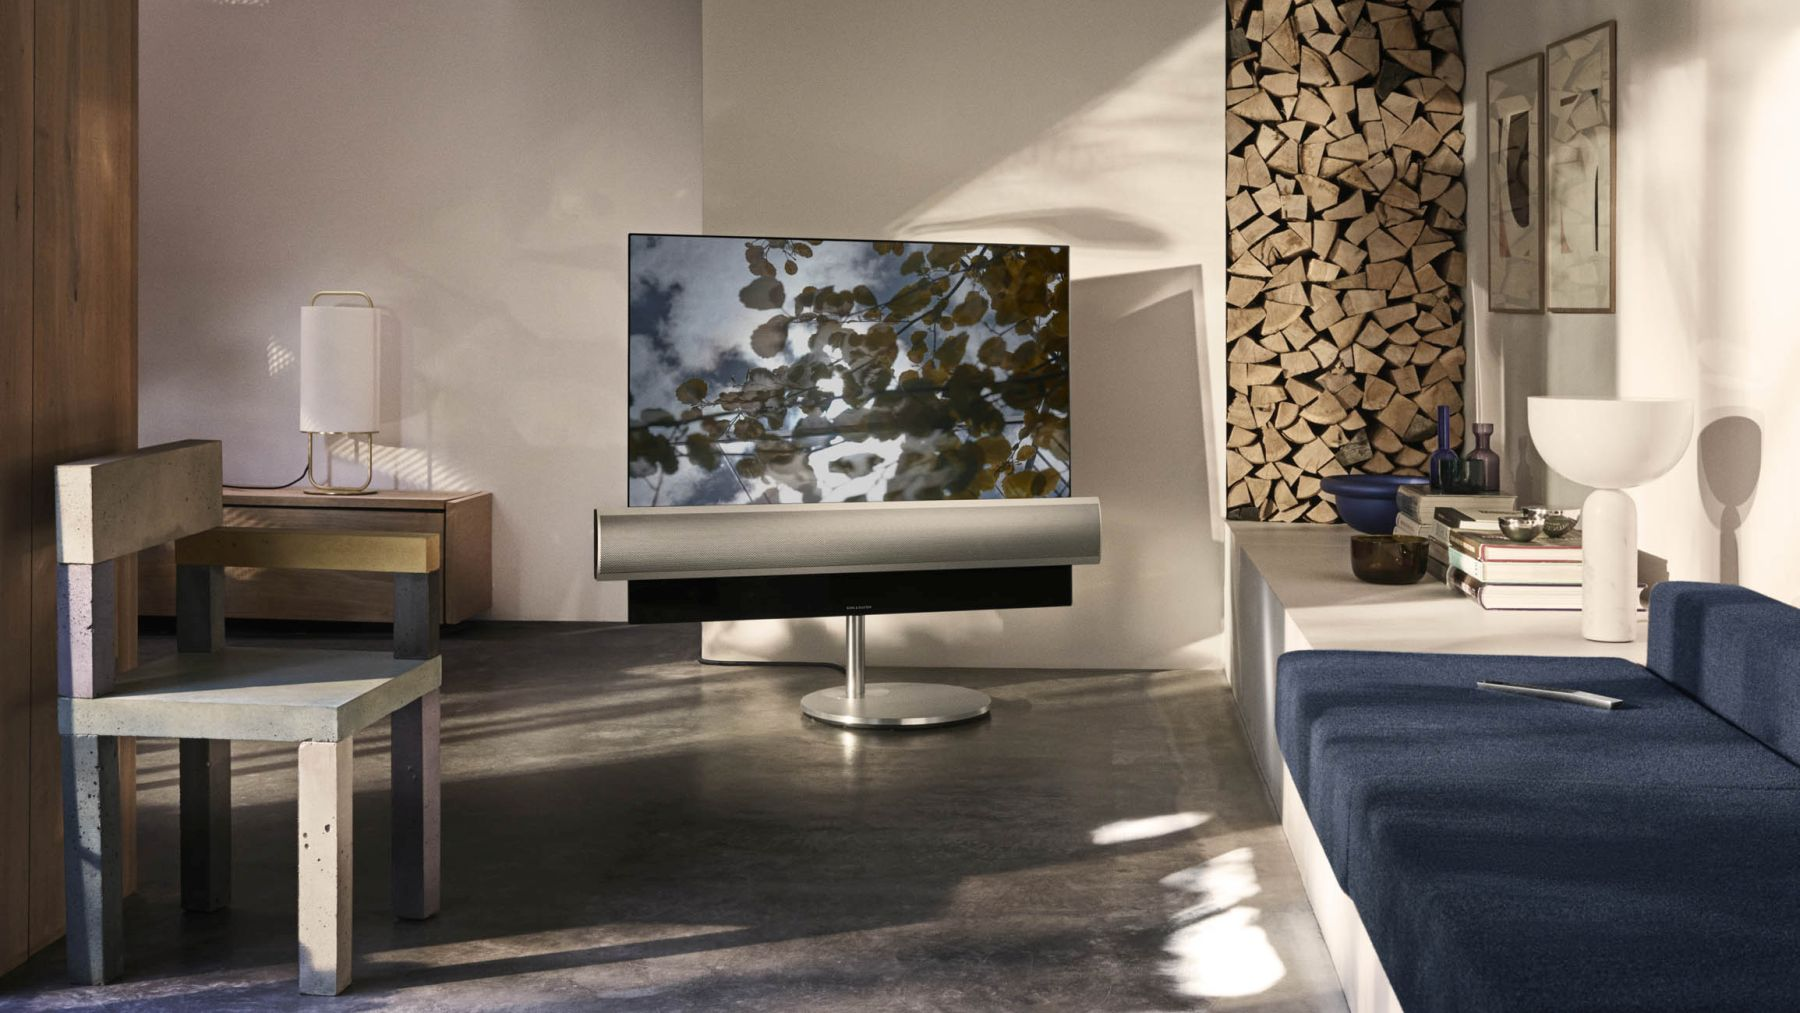 ifa lg baut fernseher mit bang olufsen cetoday. Black Bedroom Furniture Sets. Home Design Ideas